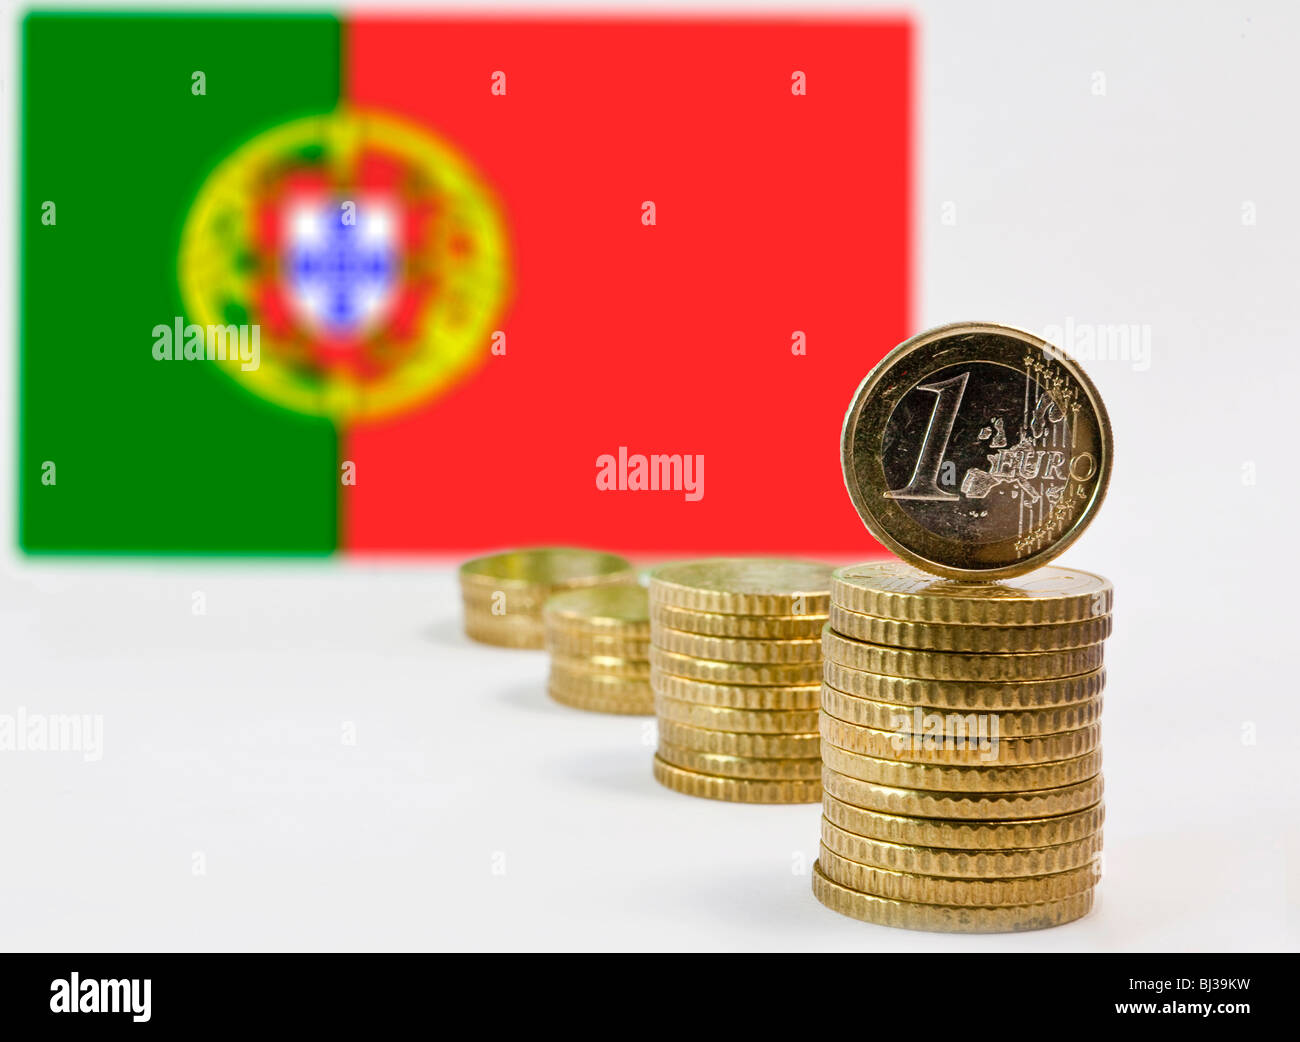 Portuguese flag, Portugal and the Euro - Stock Image